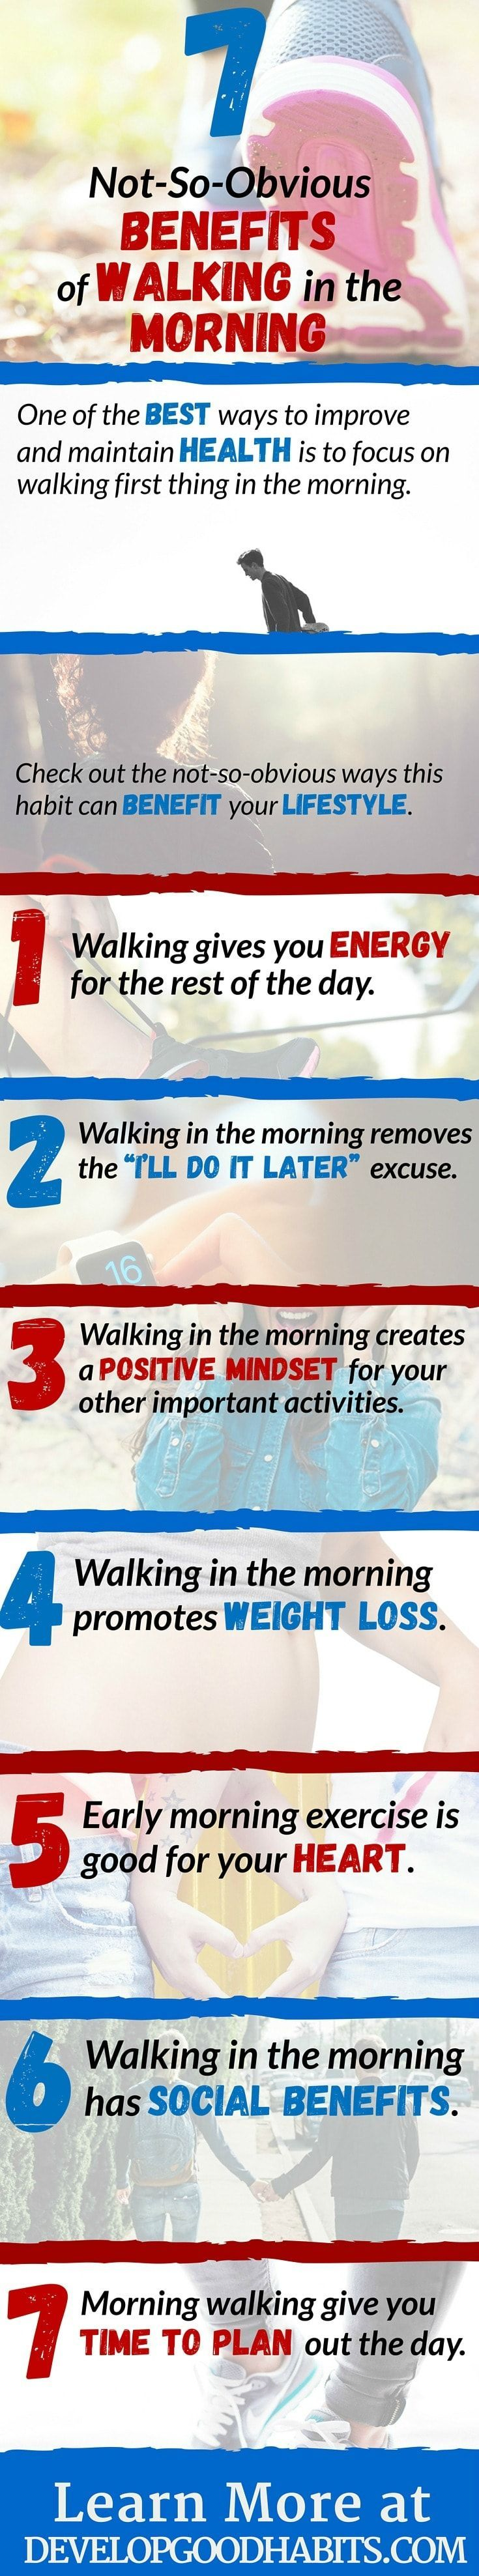 NotSoObvious Benefits of Walking in the Morning  Benefits of